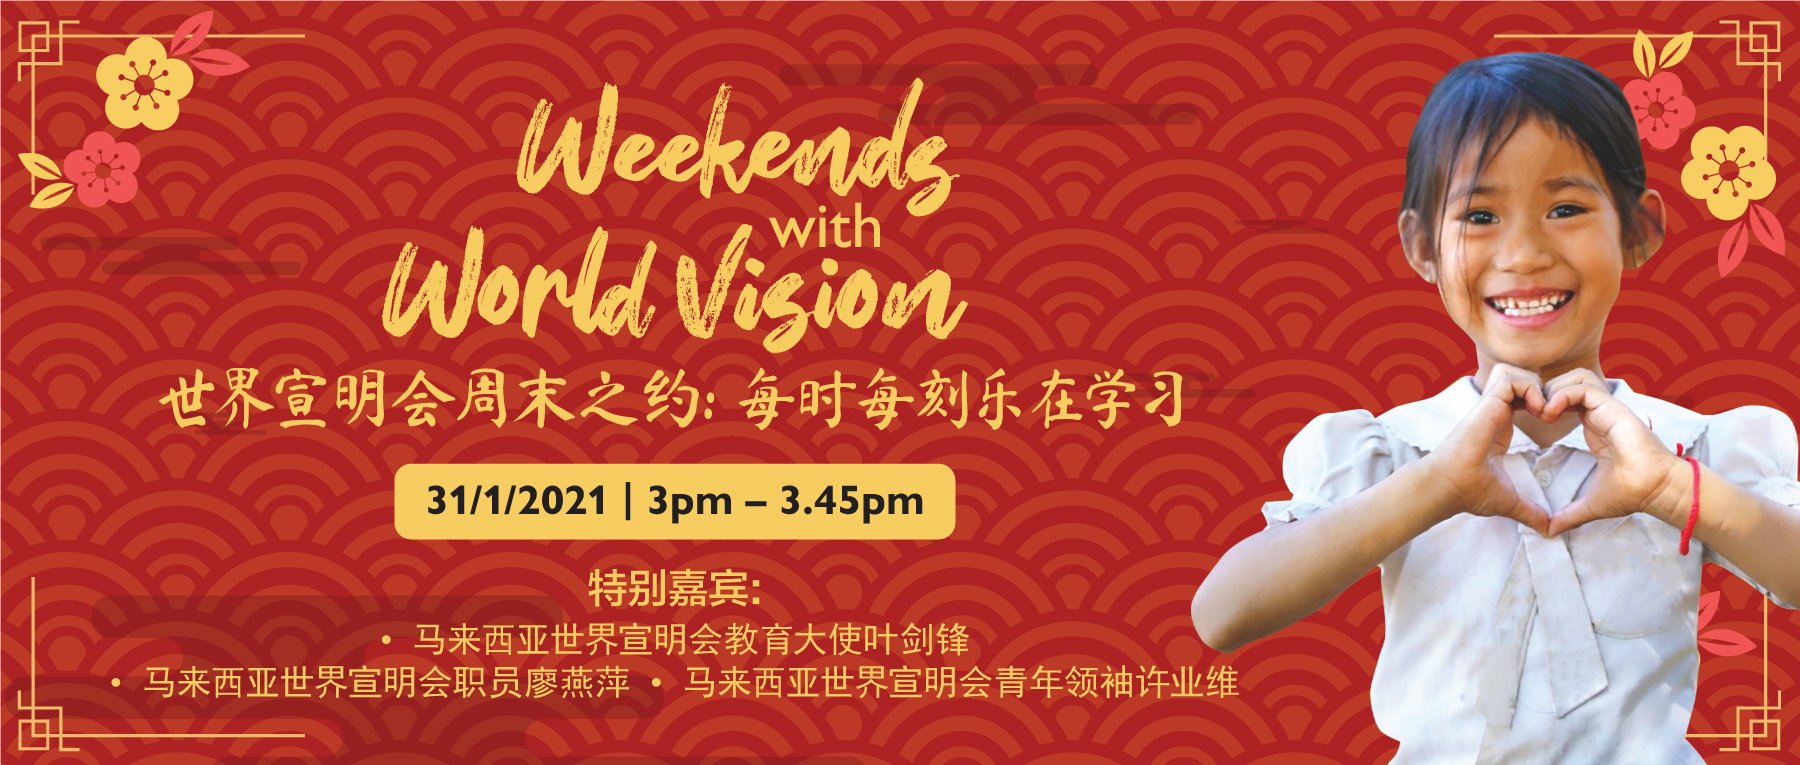 Weekends with World Vision: Celebrate the Joy of Learning